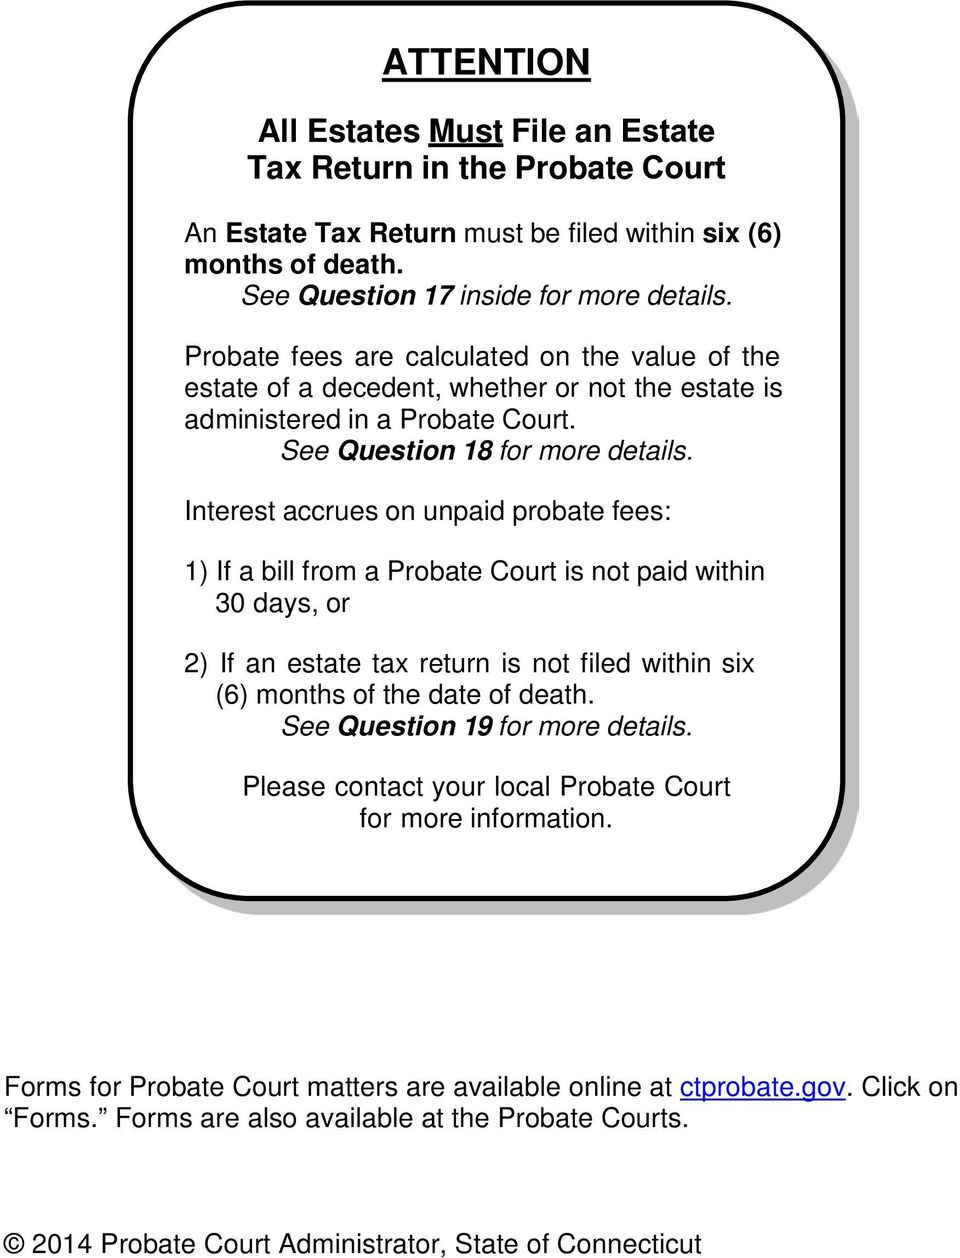 Interest accrues on unpaid probate fees: 1) If a bill from a Probate Court is not paid within 30 days, or 2) If an estate tax return is not filed within six (6) months of the date of death.